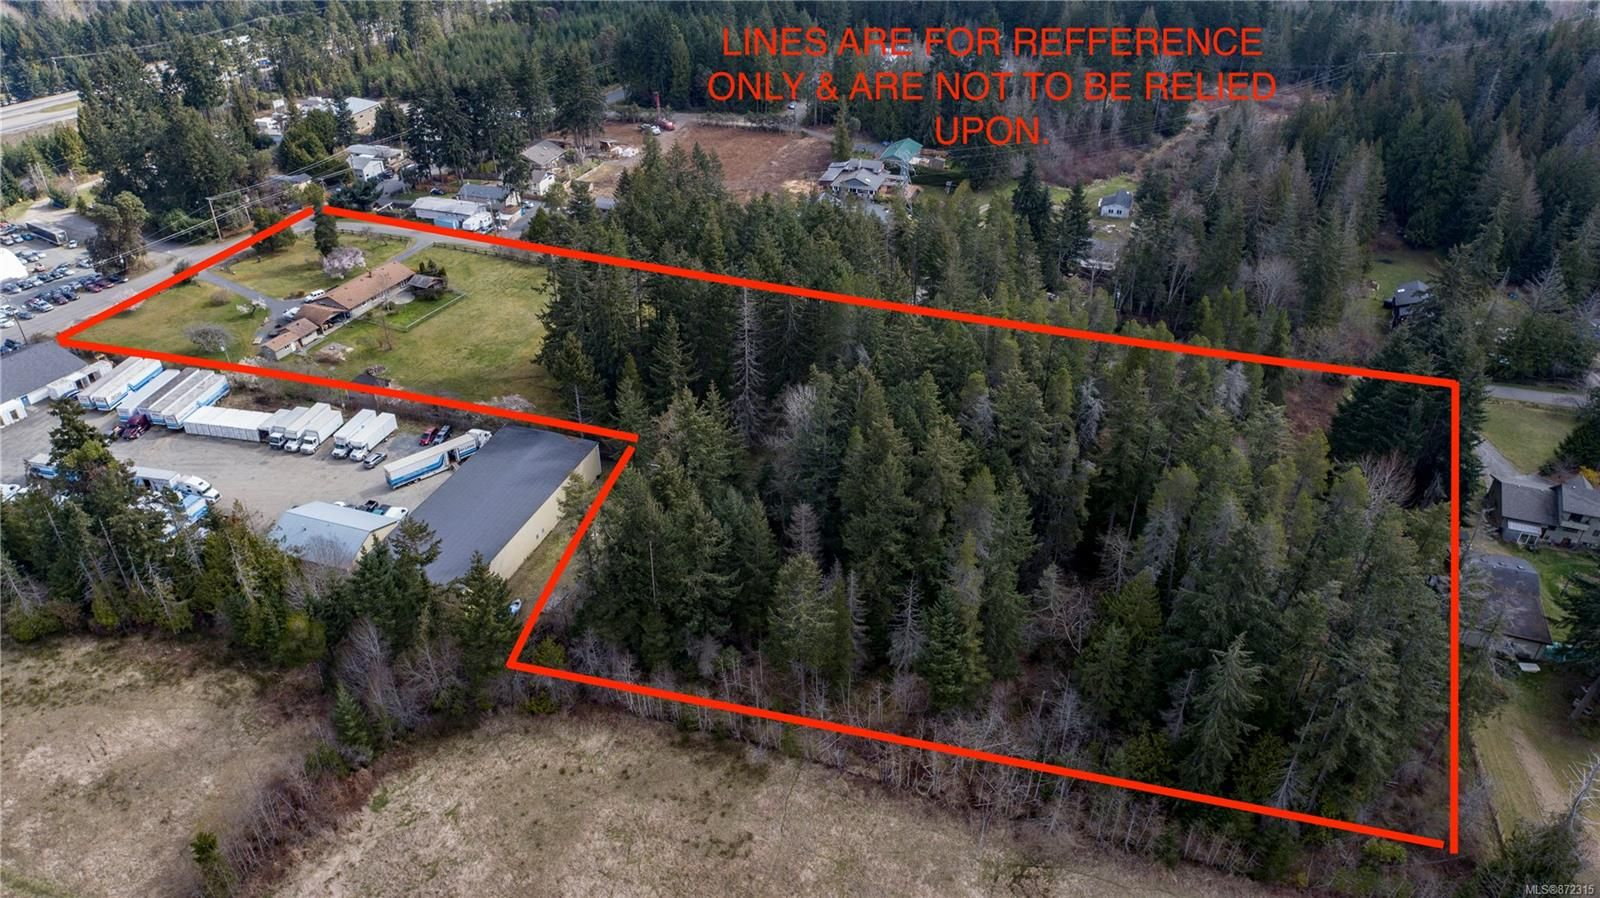 Main Photo: 840 Allsbrook Rd in : PQ Errington/Coombs/Hilliers House for sale (Parksville/Qualicum)  : MLS®# 872315